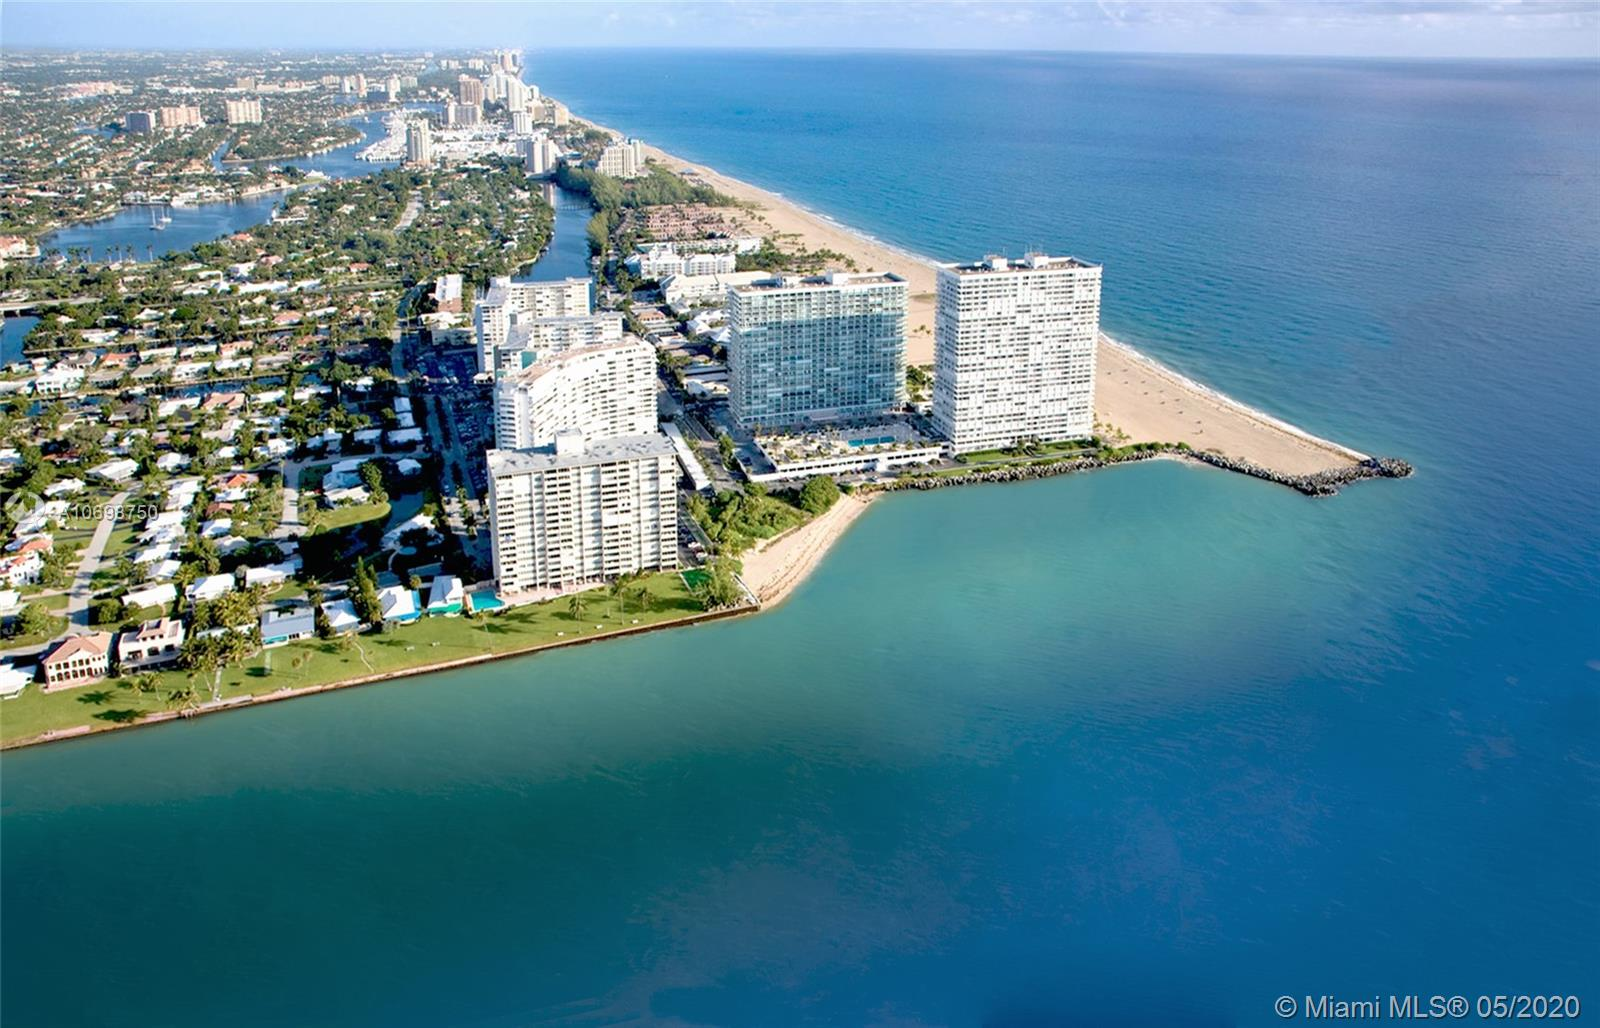 Updated & furnished NW corner model has floor to ceiling glass and an oversized 450 square foot terrace with ocean and skyline views.  Enjoy the ships in the inlet plus panoramic ocean and coastal views. Large living/dining room, oversized master suite, updated baths & more. Five star resort amenities include grand lobby, restaurant, fitness centers, guest rooms, library, 24 hour security, lush pools and cabanas on the widest beach in Fort Lauderdale.  Close proximity to restaurants and beach clubs and minutes to Las Olas/downtown, airport, Virgin Train and all major roads.